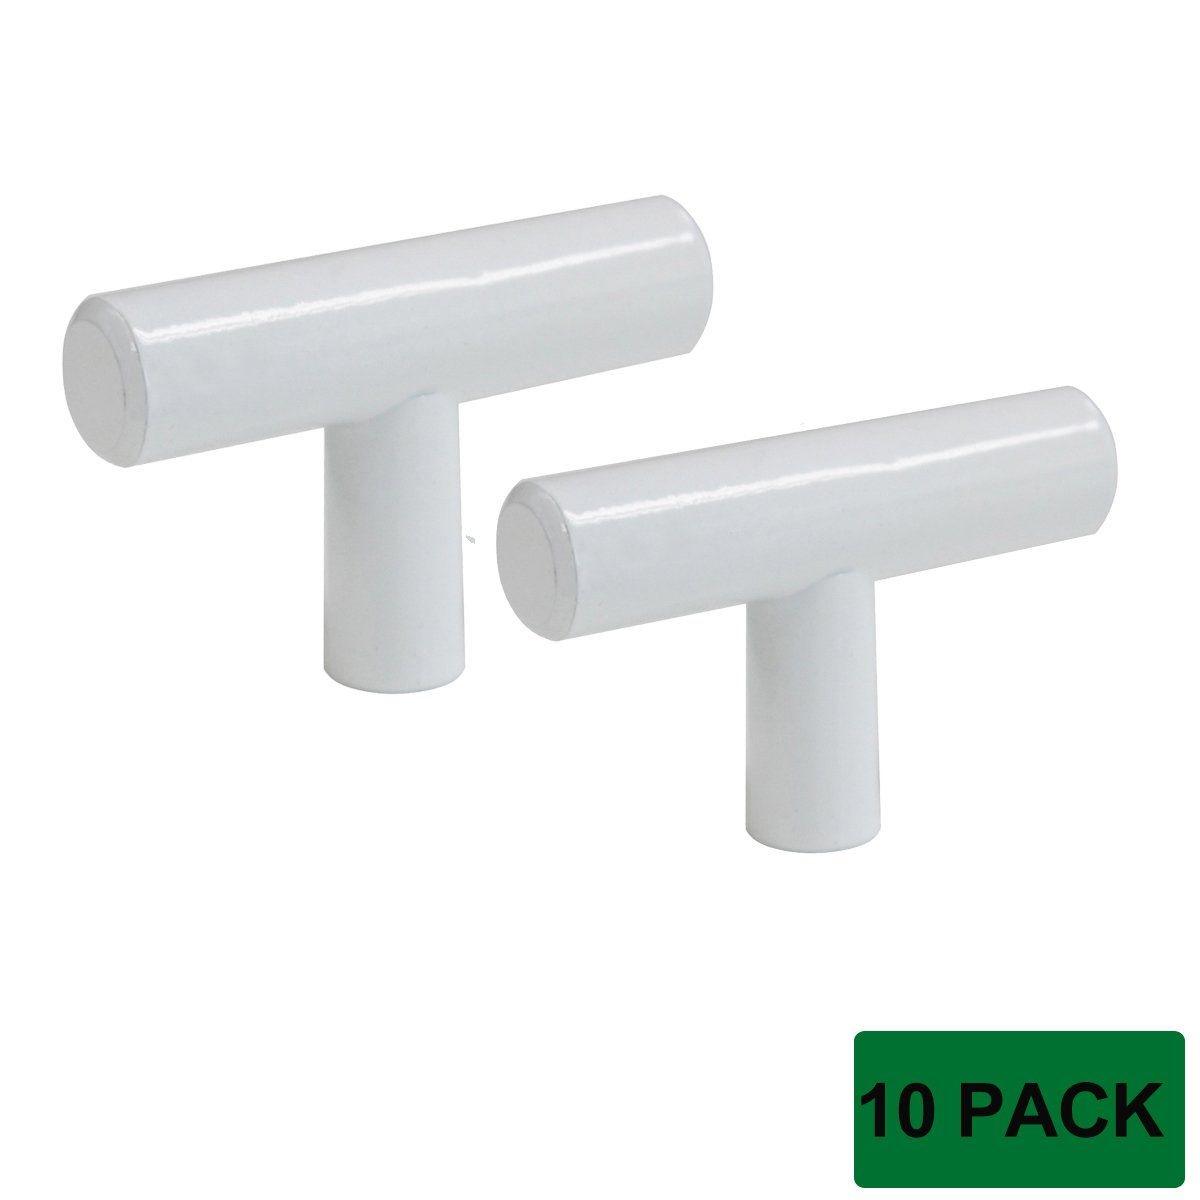 Probrico Modern Cabinet Hardware Handle Pull Kitchen Cabinet T Bar Knobs and Pull Handles White Stainless Steel Hardware For Closet Drawer - Single Hole - 10 Pack